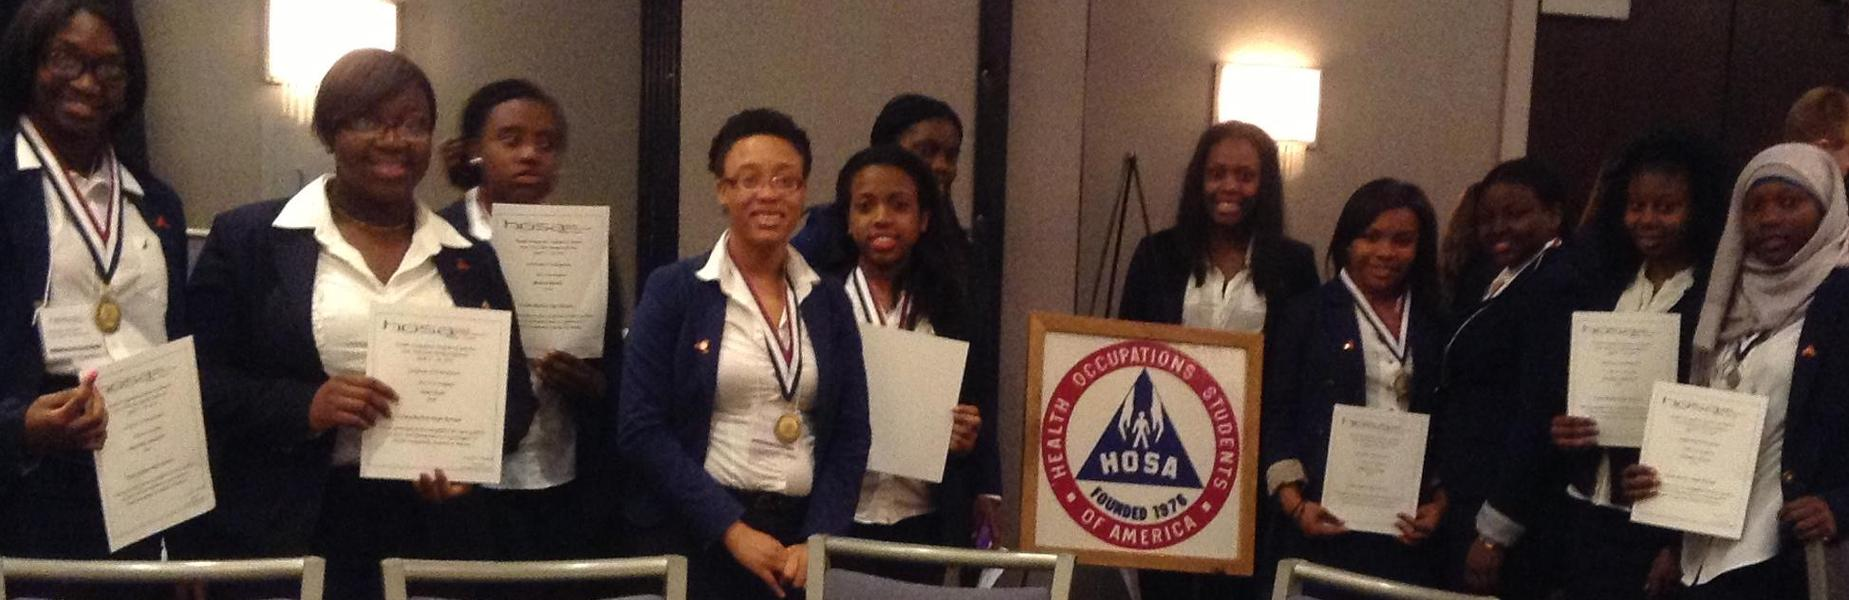 HOSA award winners